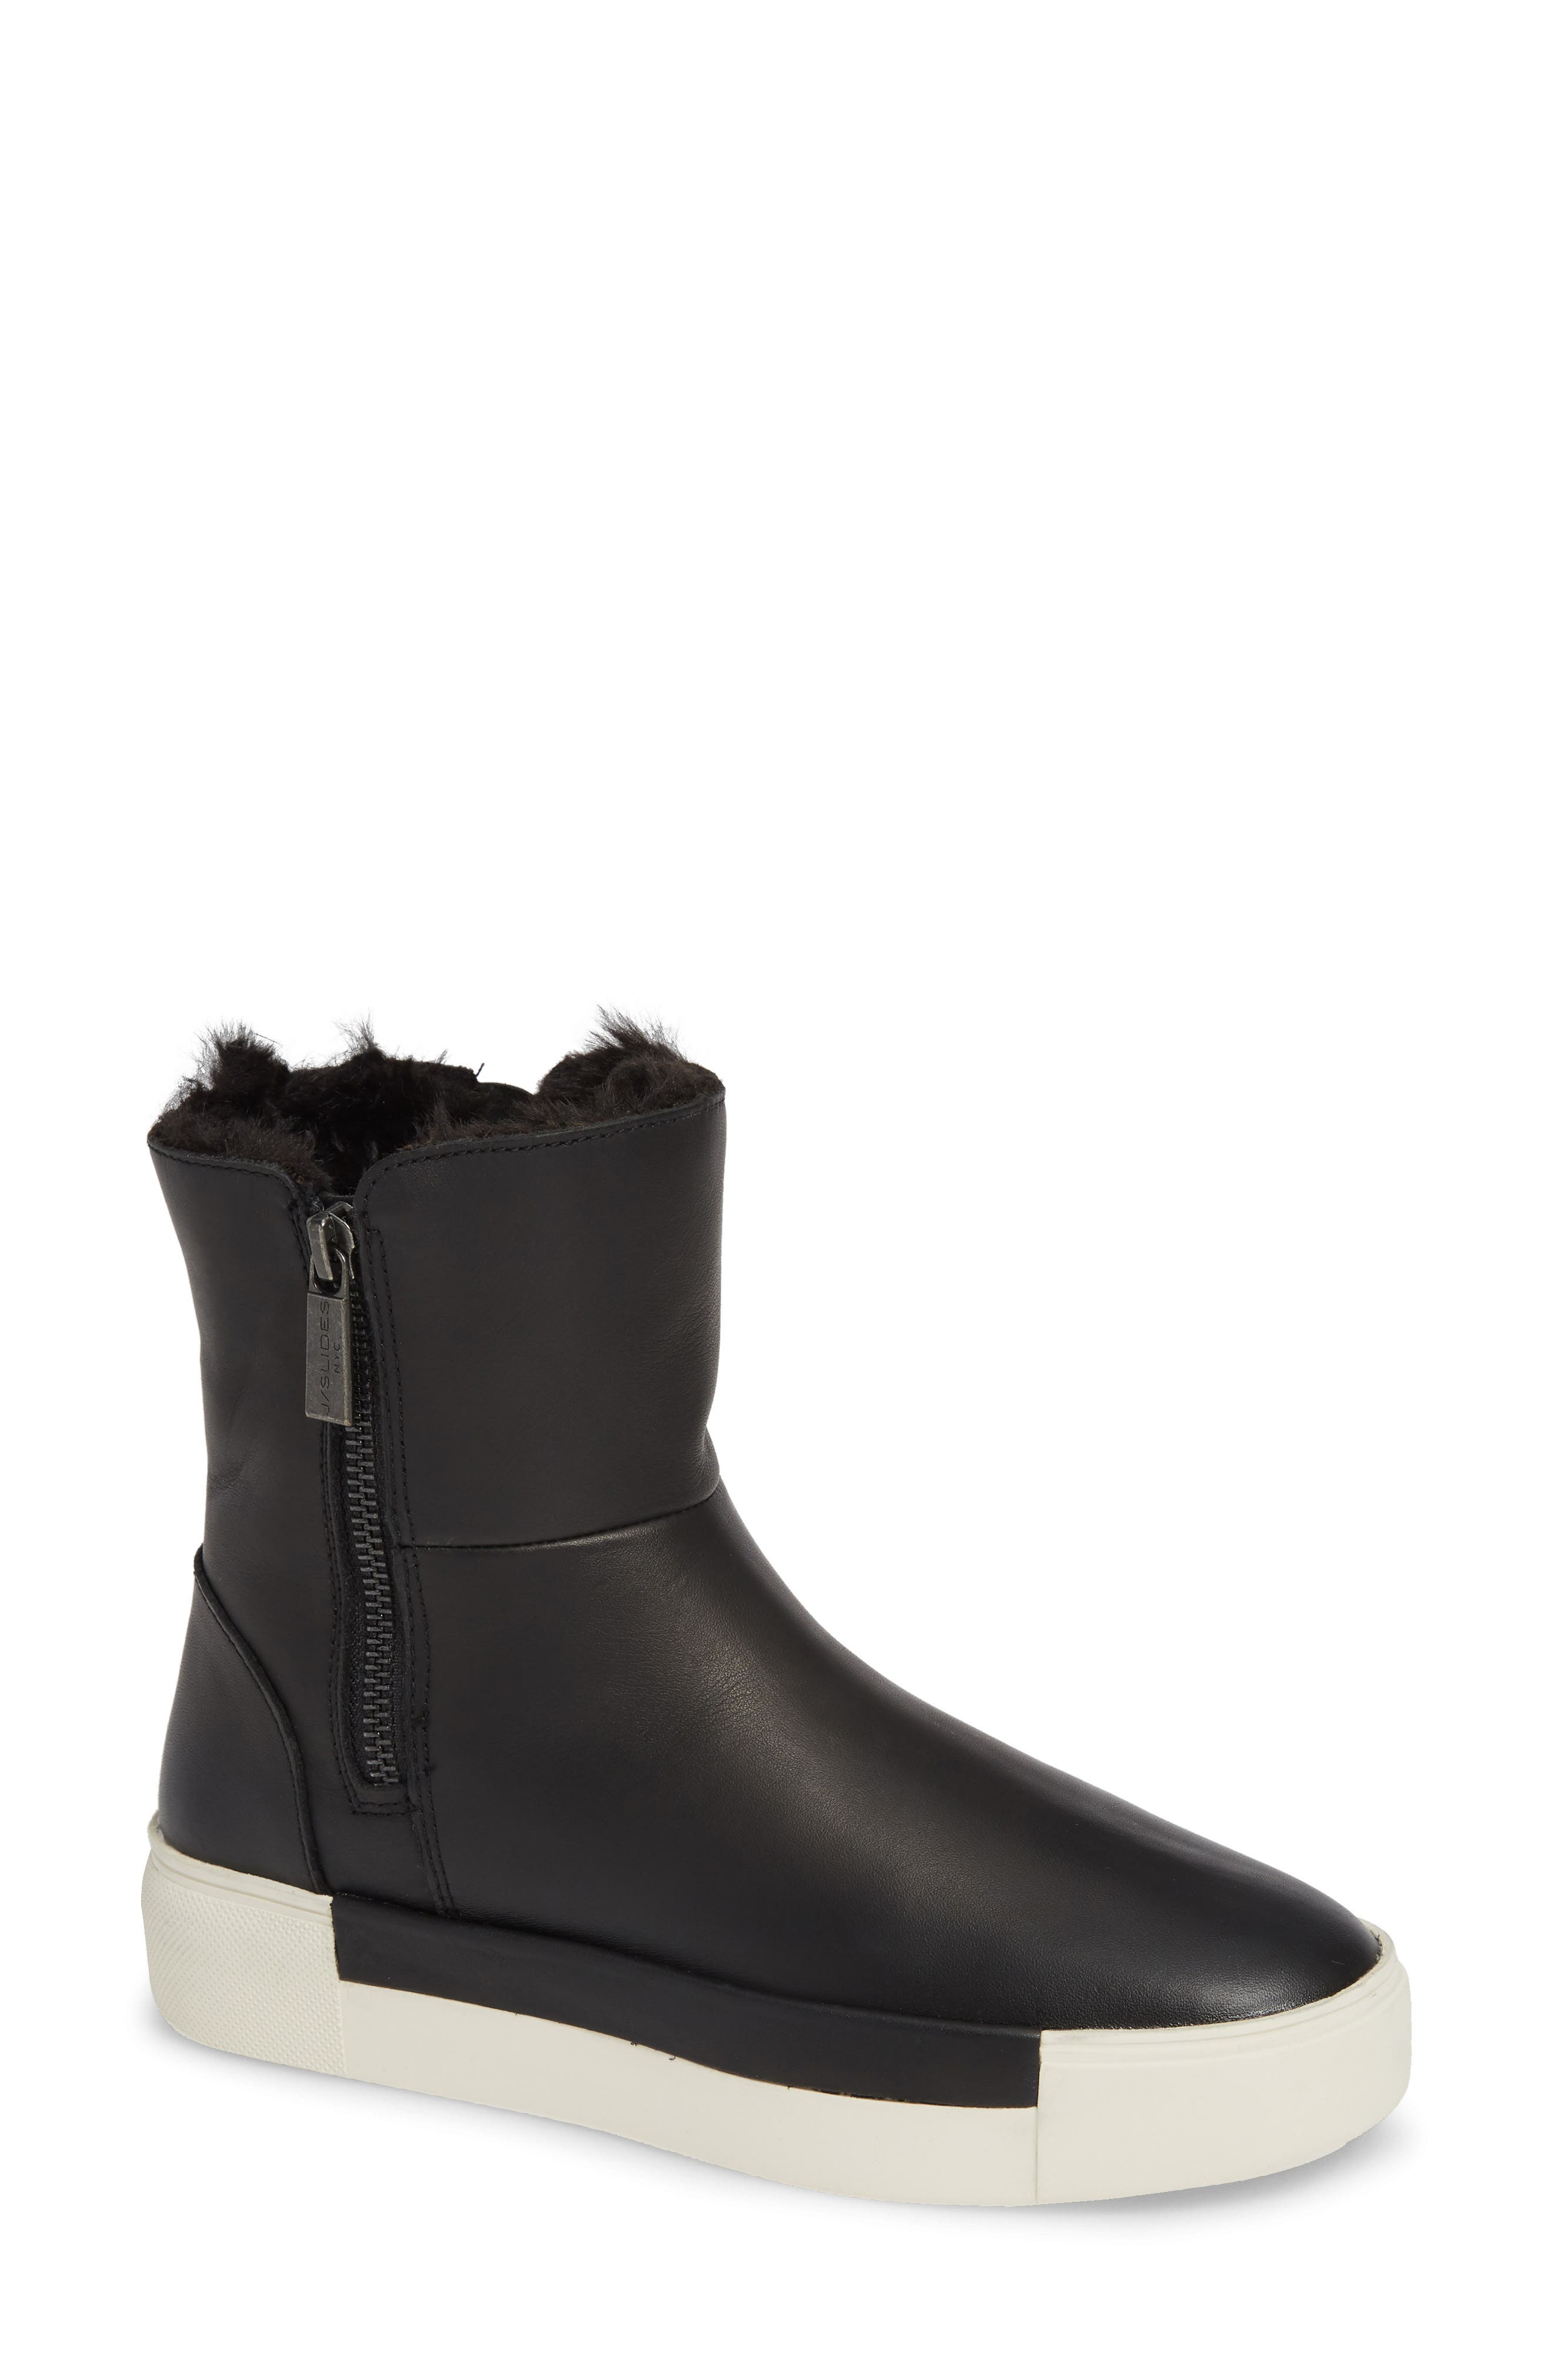 Victory Double Zip Boot,                         Main,                         color, BLACK WATERPROOF LEATHER